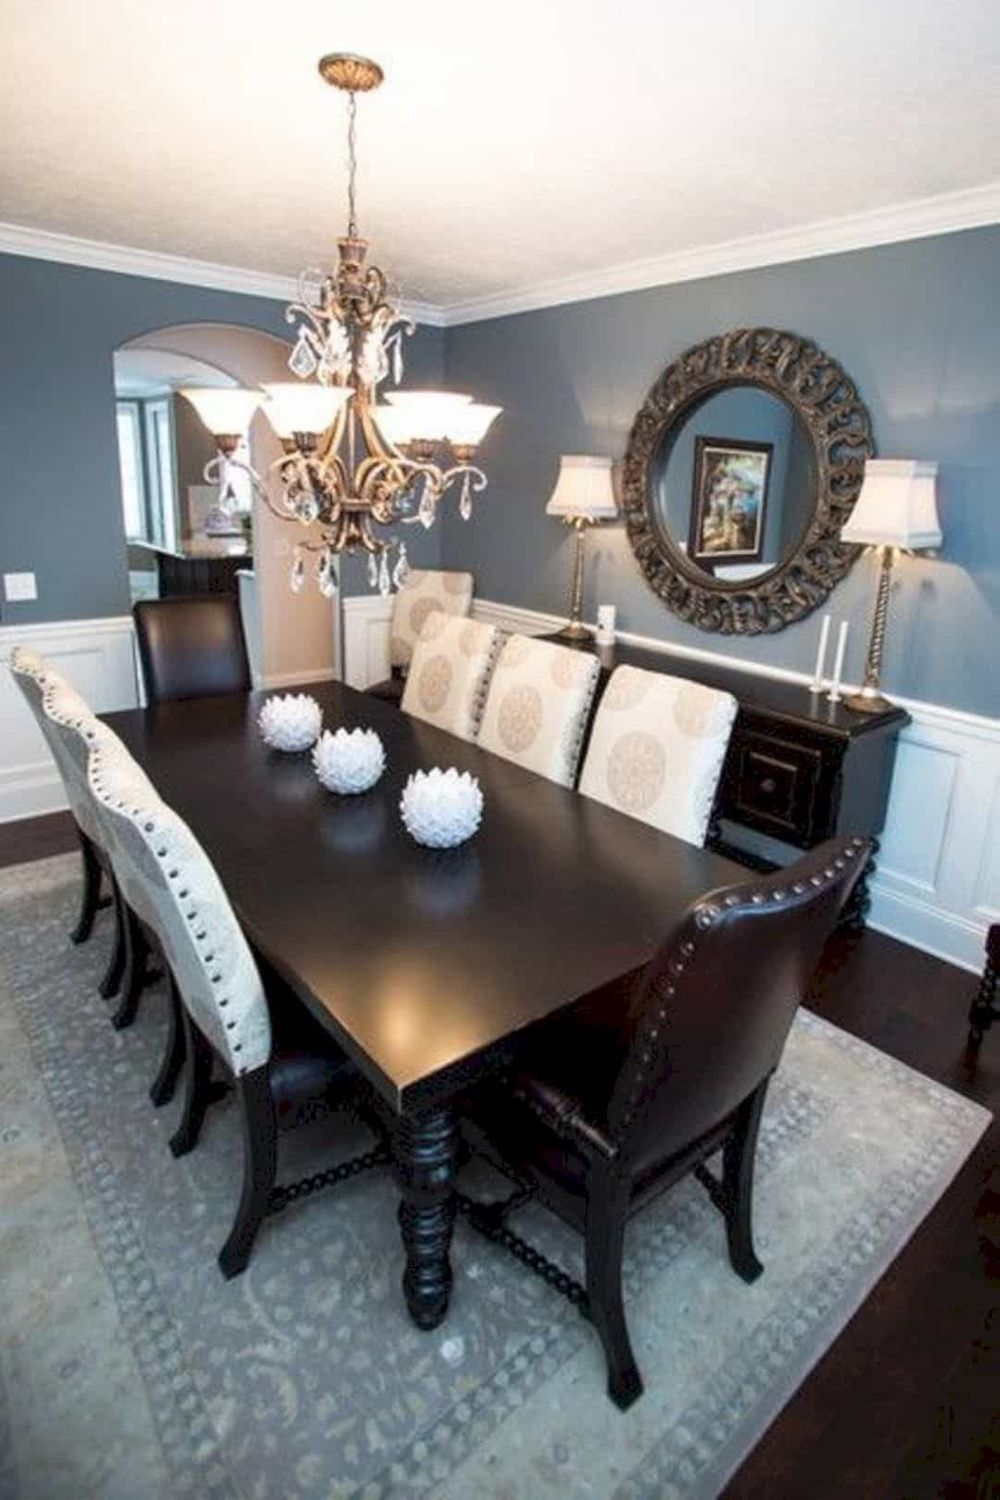 Table Living Room Dining Table Blue Furniture Interior Design Dining Room Blue Dining Room Table Decor Dining Room Paint